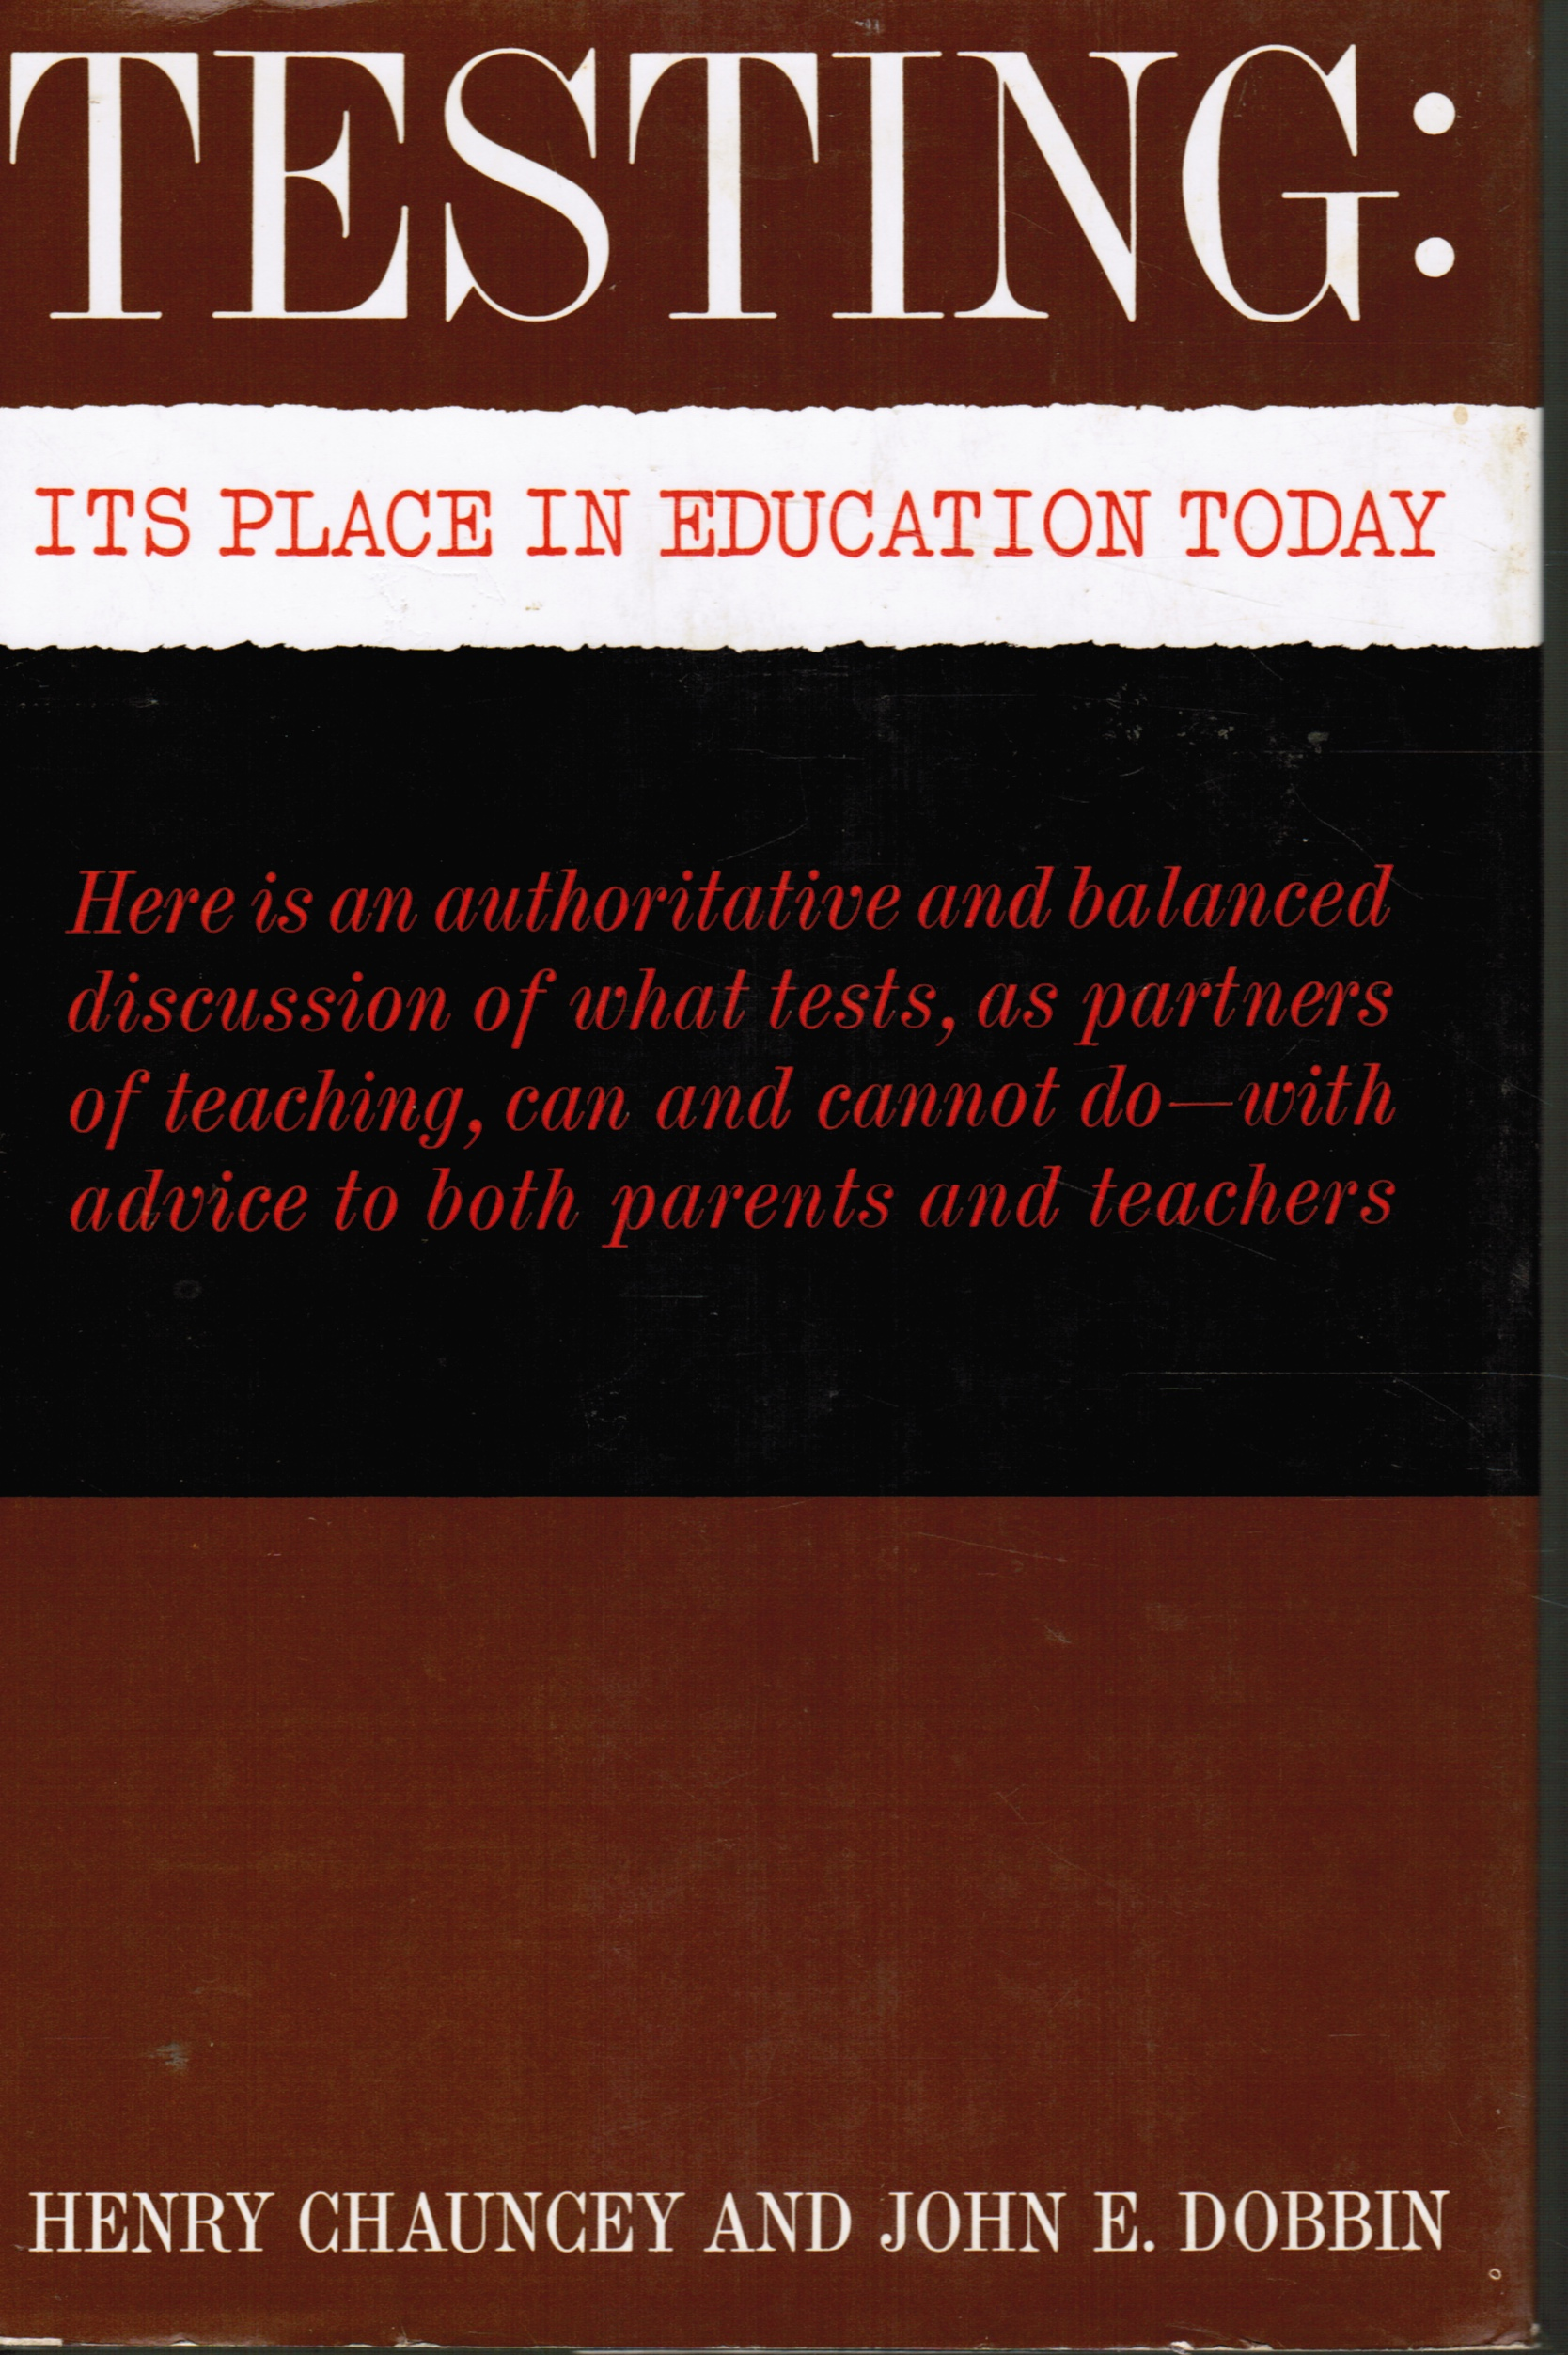 Image for Testing: it's Place in Education Today